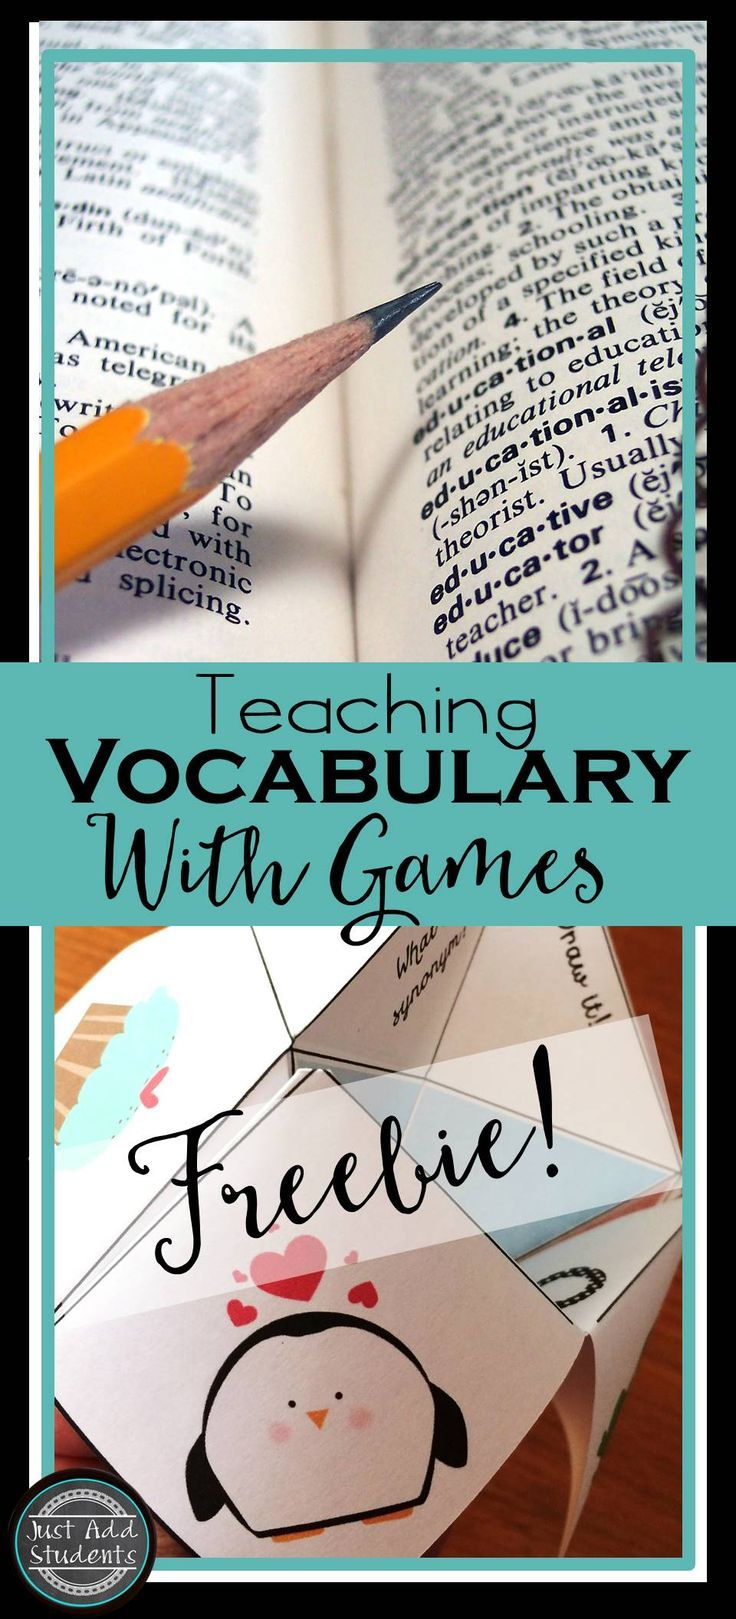 Vocabulary.com - Learn Words - English Dictionary